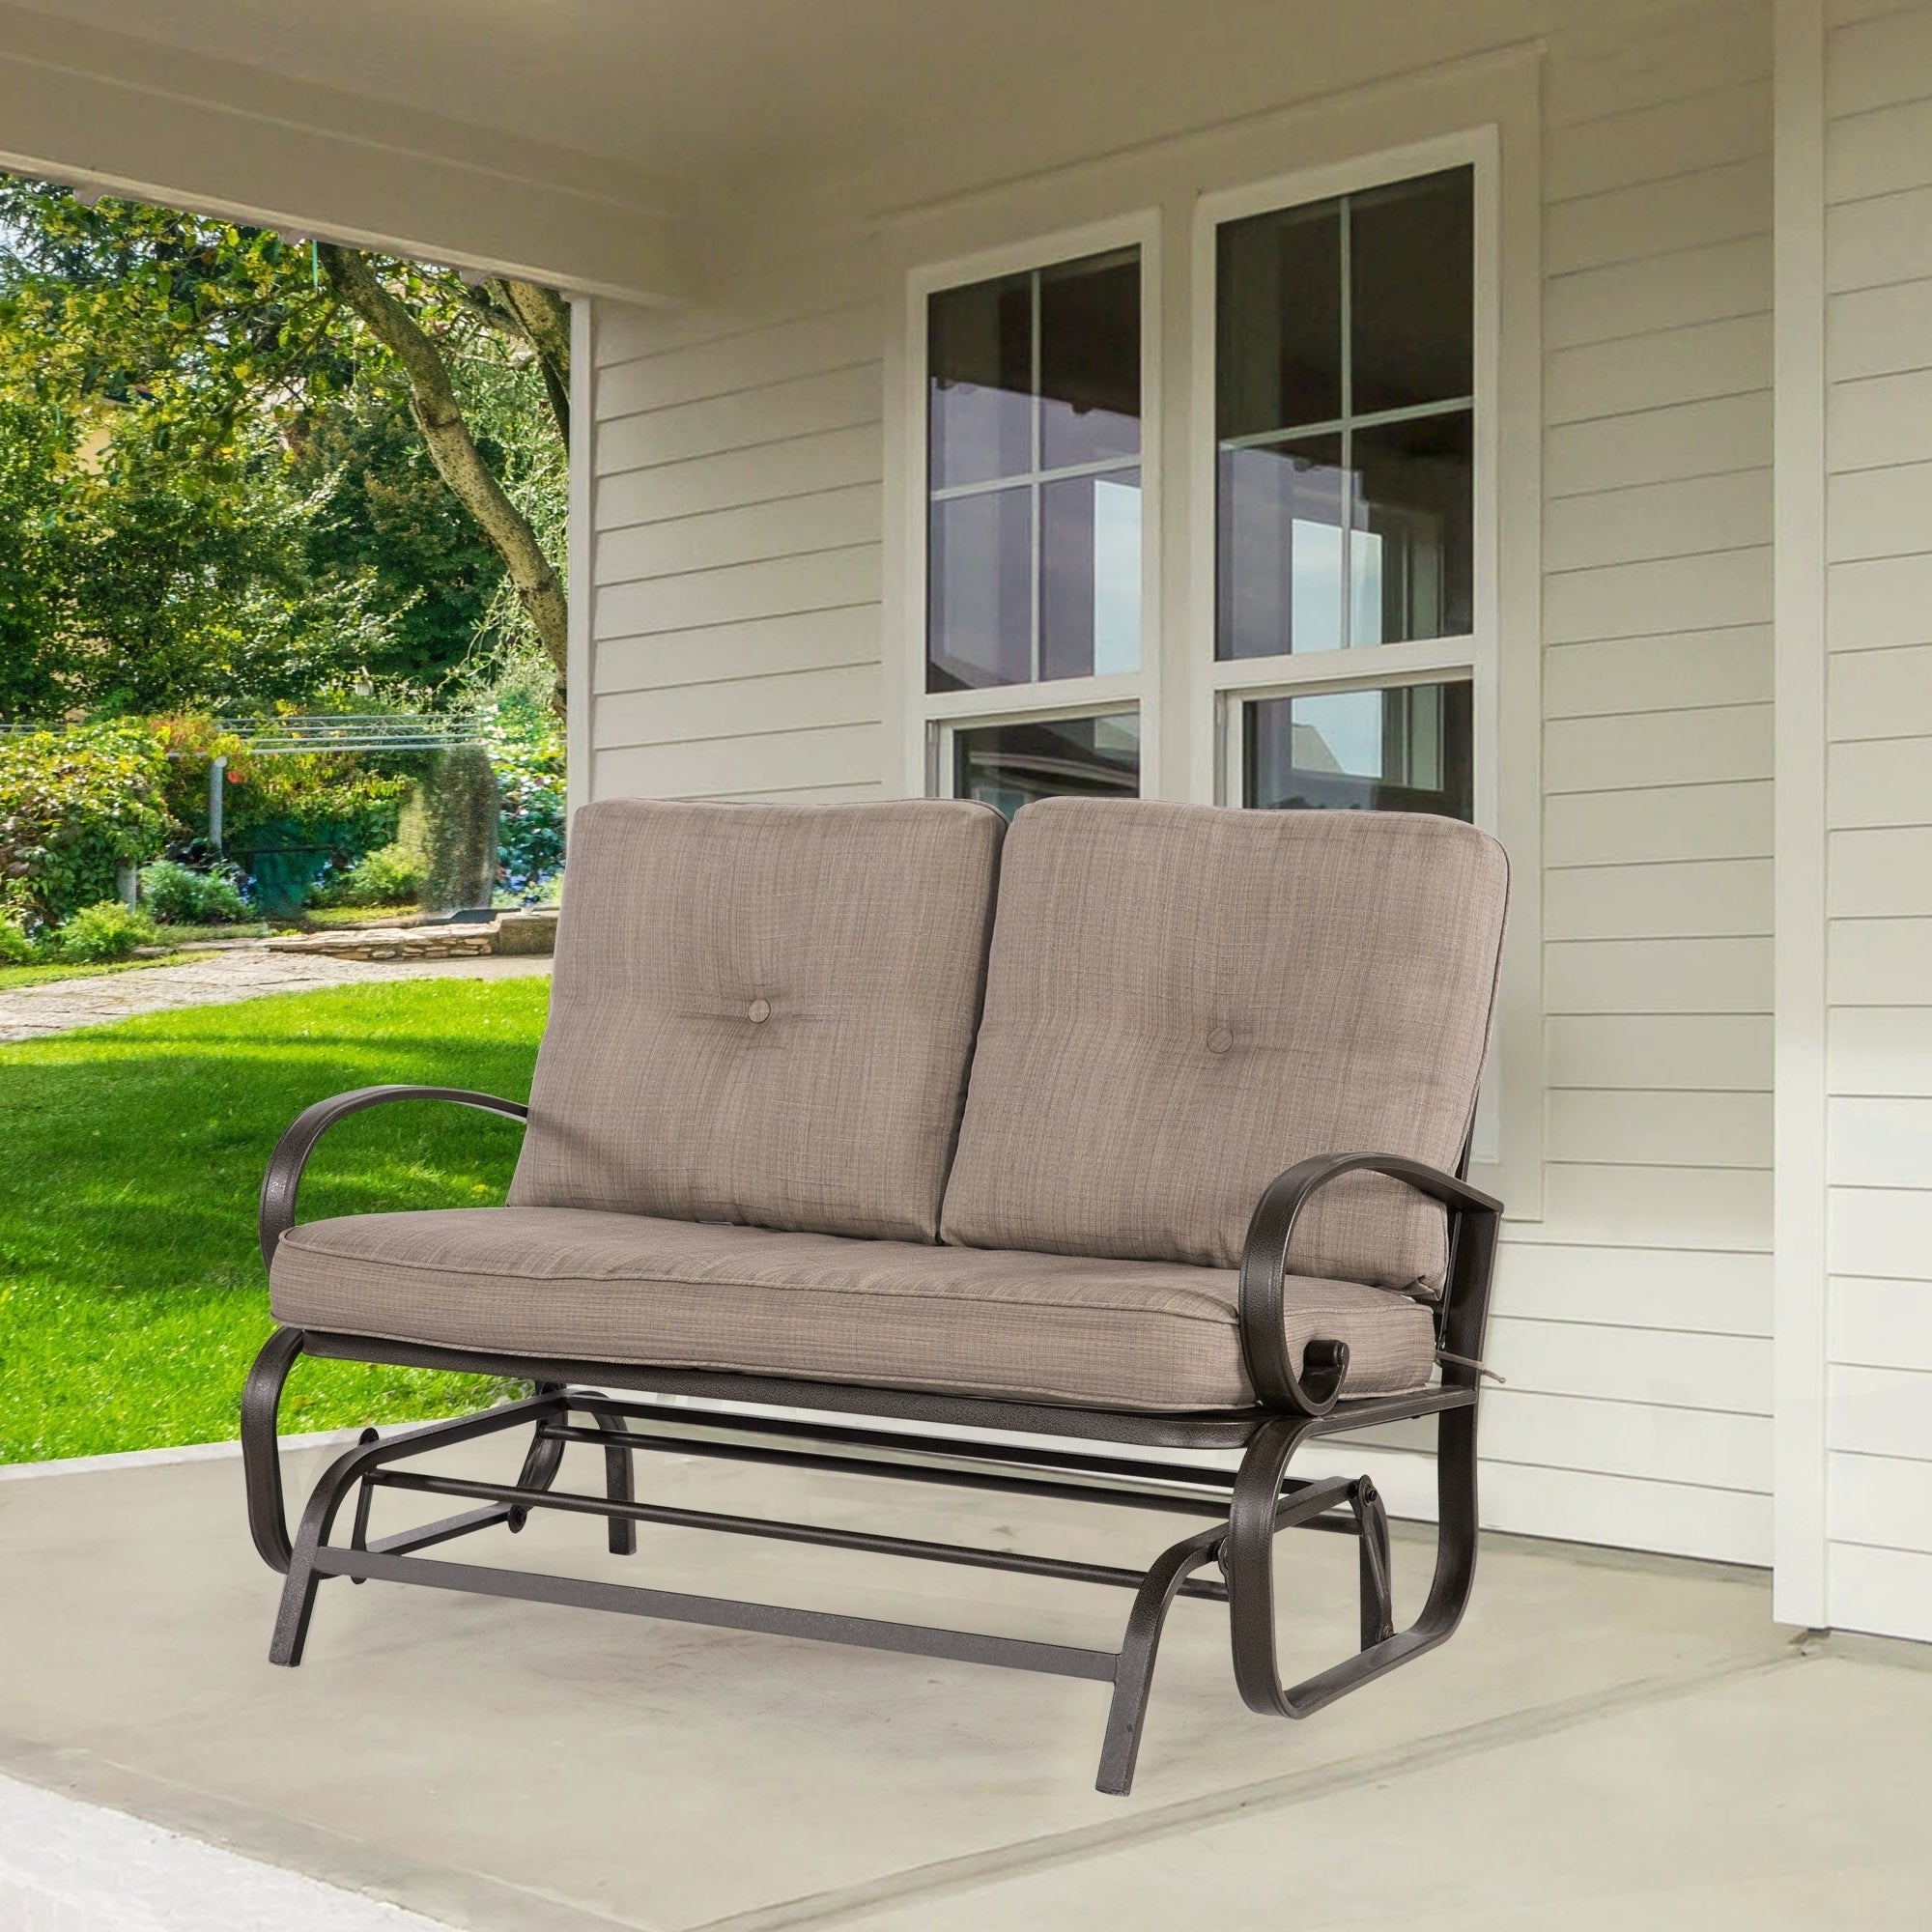 2 Person Loveseat Cushioned Rocking Bench Furniture Patio Swing Rocker Lounge Glider Chair Outdoor Patio, Gradient Brown Regarding Favorite 2 Person Loveseat Chair Patio Porch Swings With Rocker (View 23 of 30)